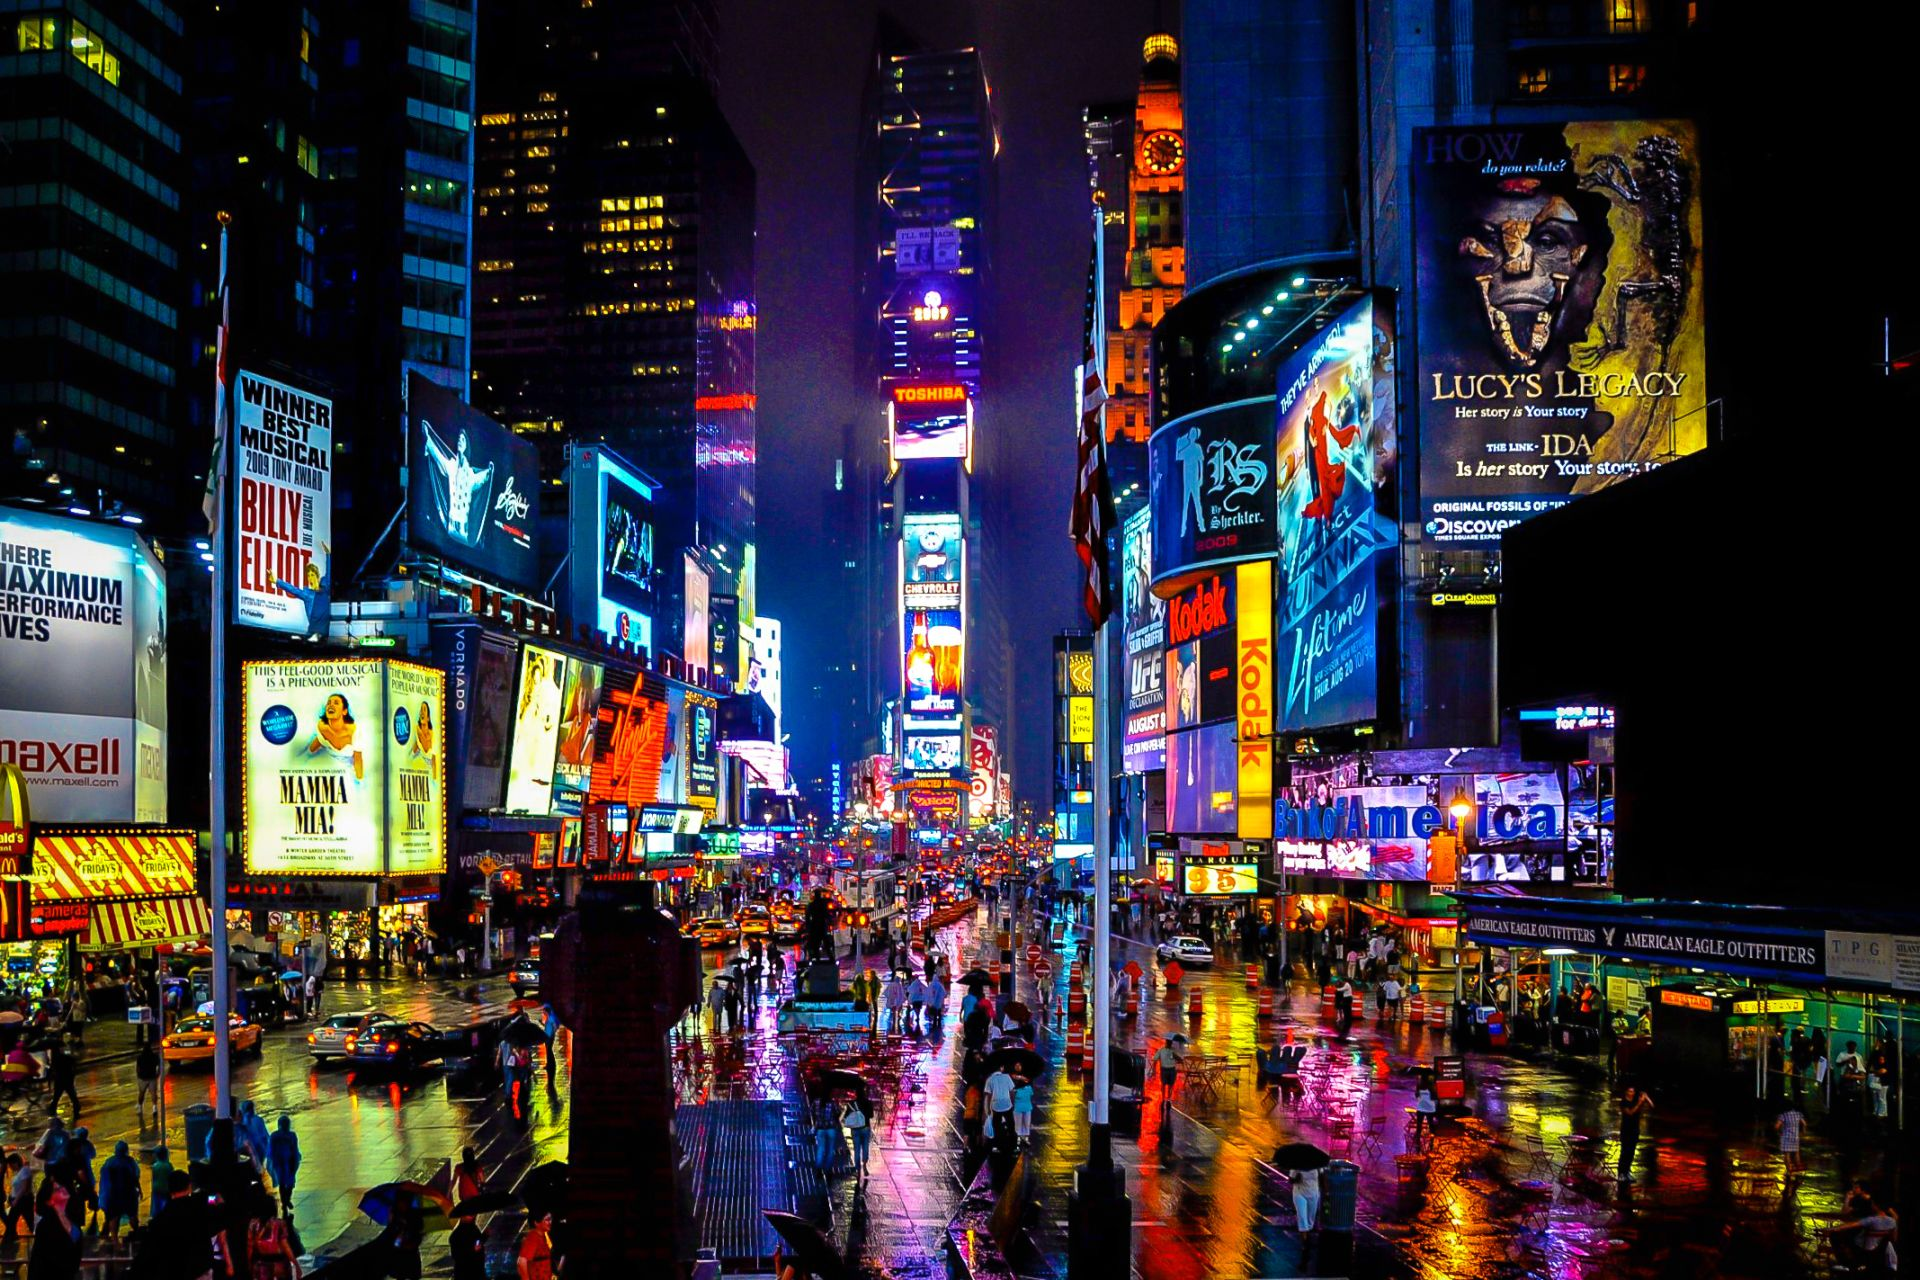 Times Square on a rainy, magical night